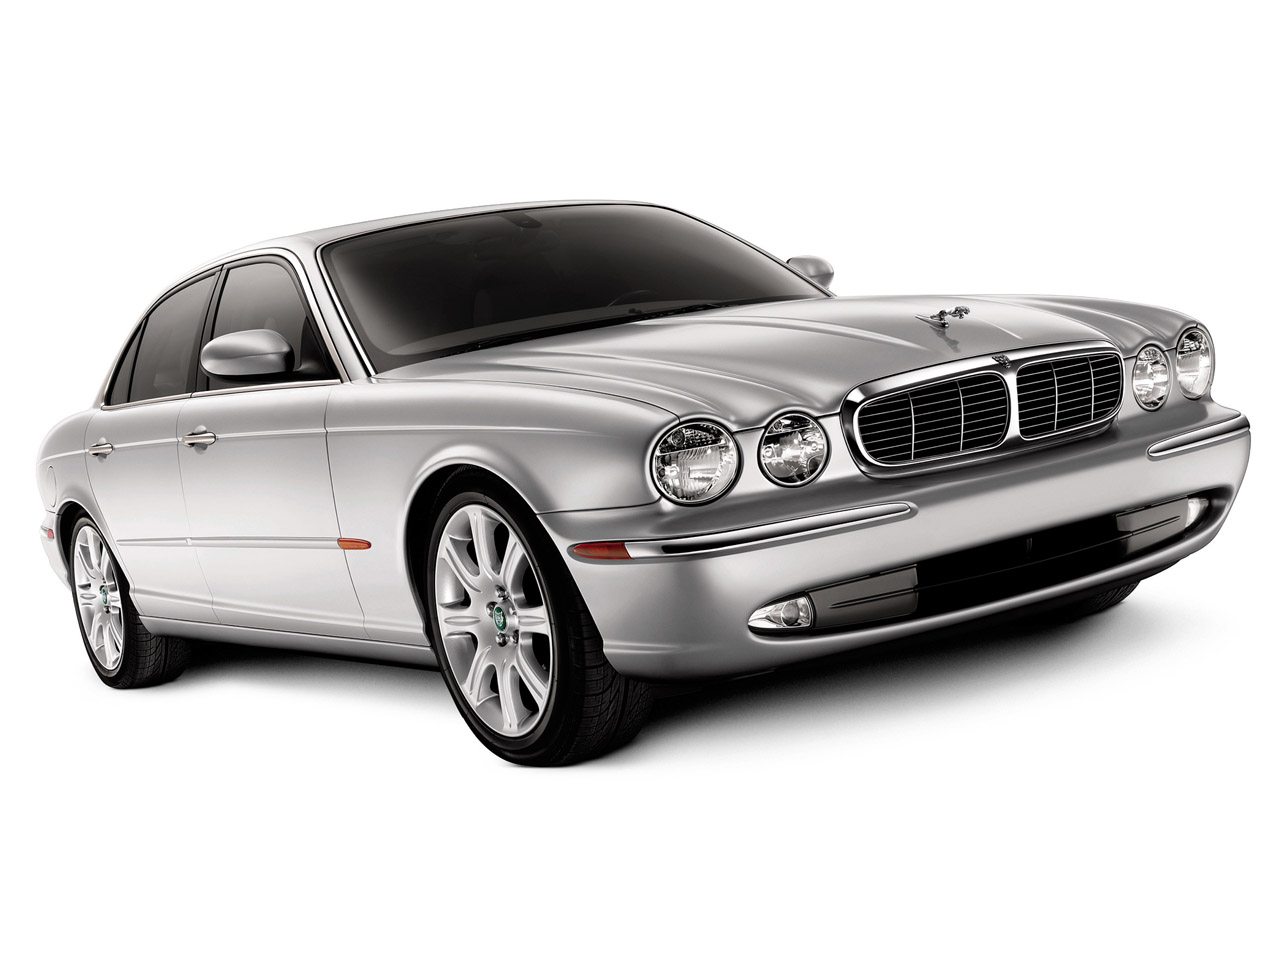 Jaguar Xj8 2007 Review Amazing Pictures And Images Look At The Car 05 S Type Fuse Box Diagram Photo 1